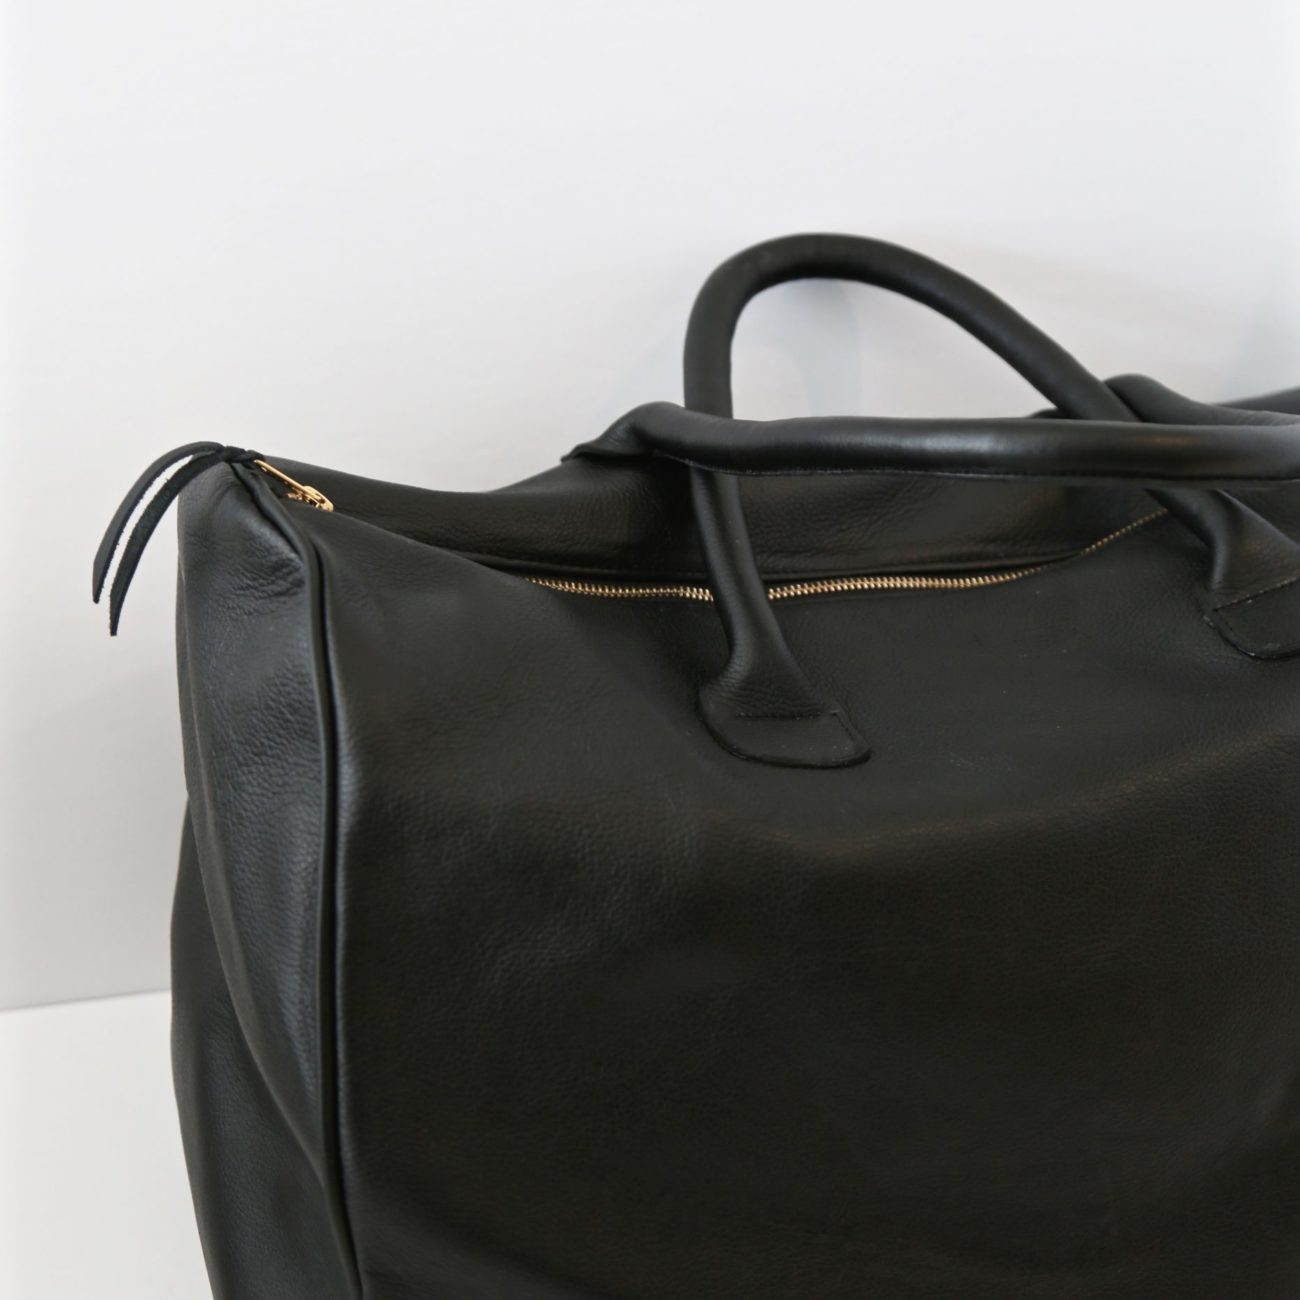 Luxury Leather Travel Bag, Black